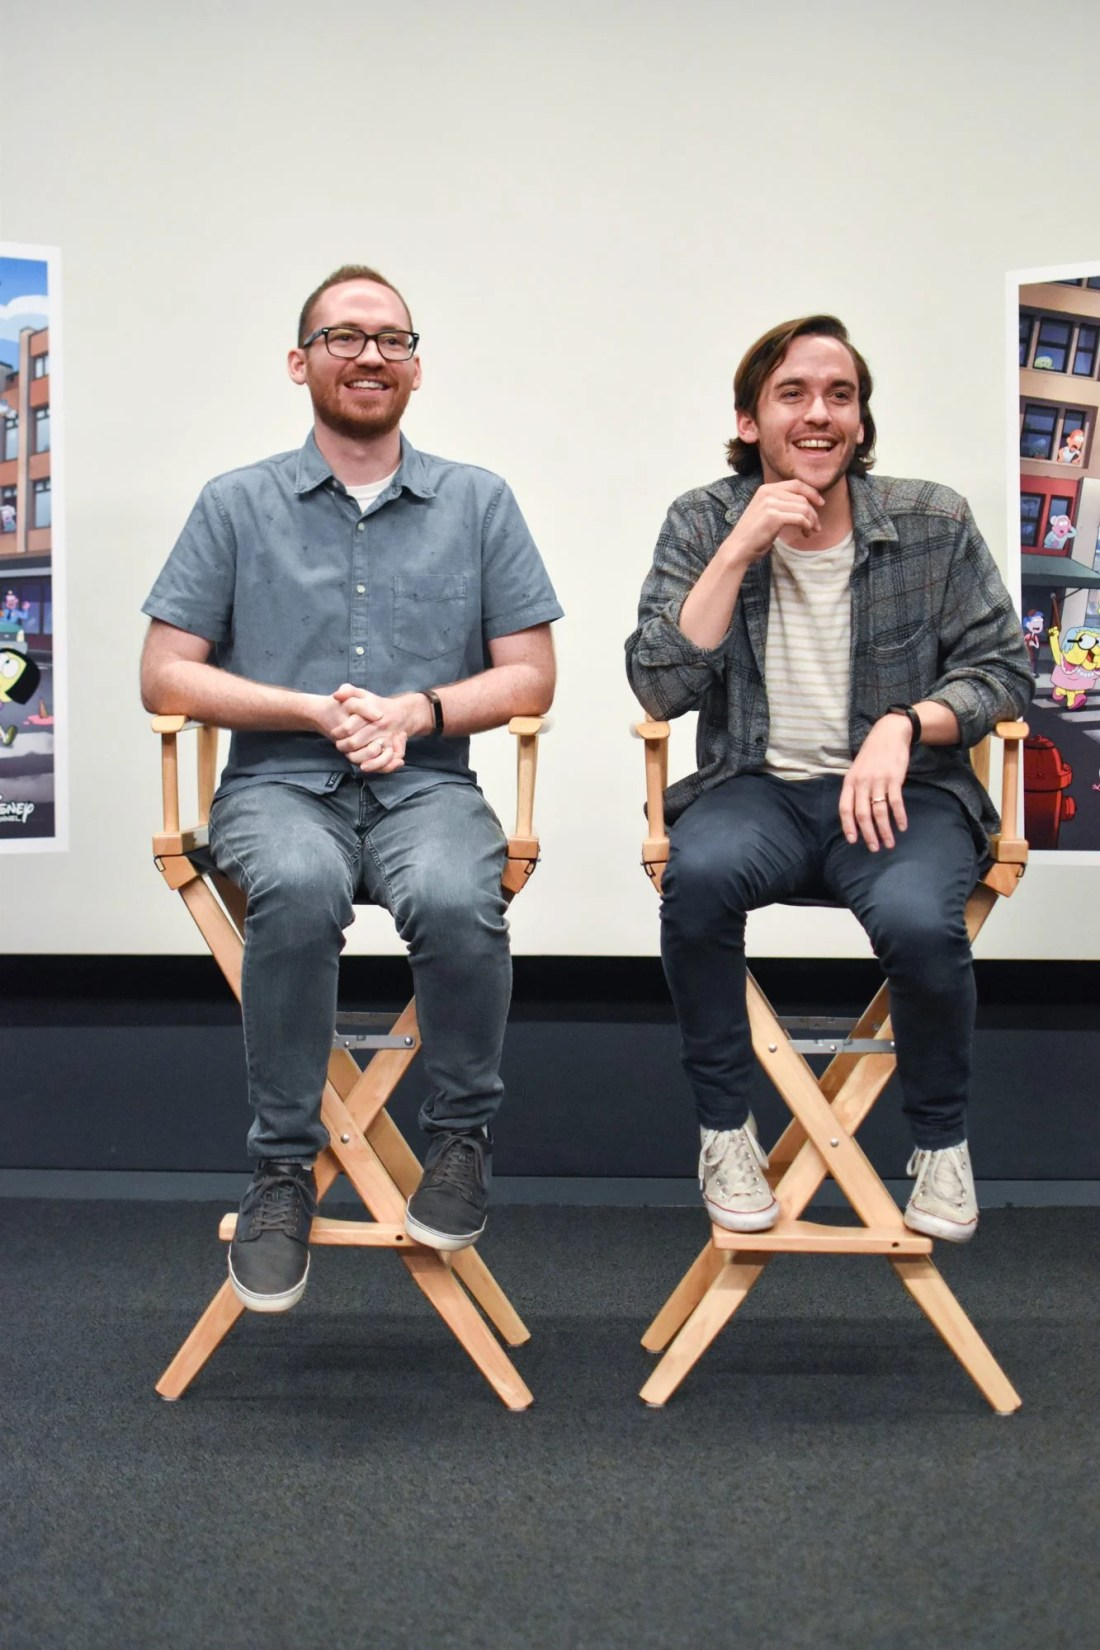 Chris and Shane Houghton sitting at interview with bloggers answering questions after screening. Big City Greens premieres June 18 at 9:30 a.m. on Disney Channel, DisneyNOW, and Disney Channel VOD.